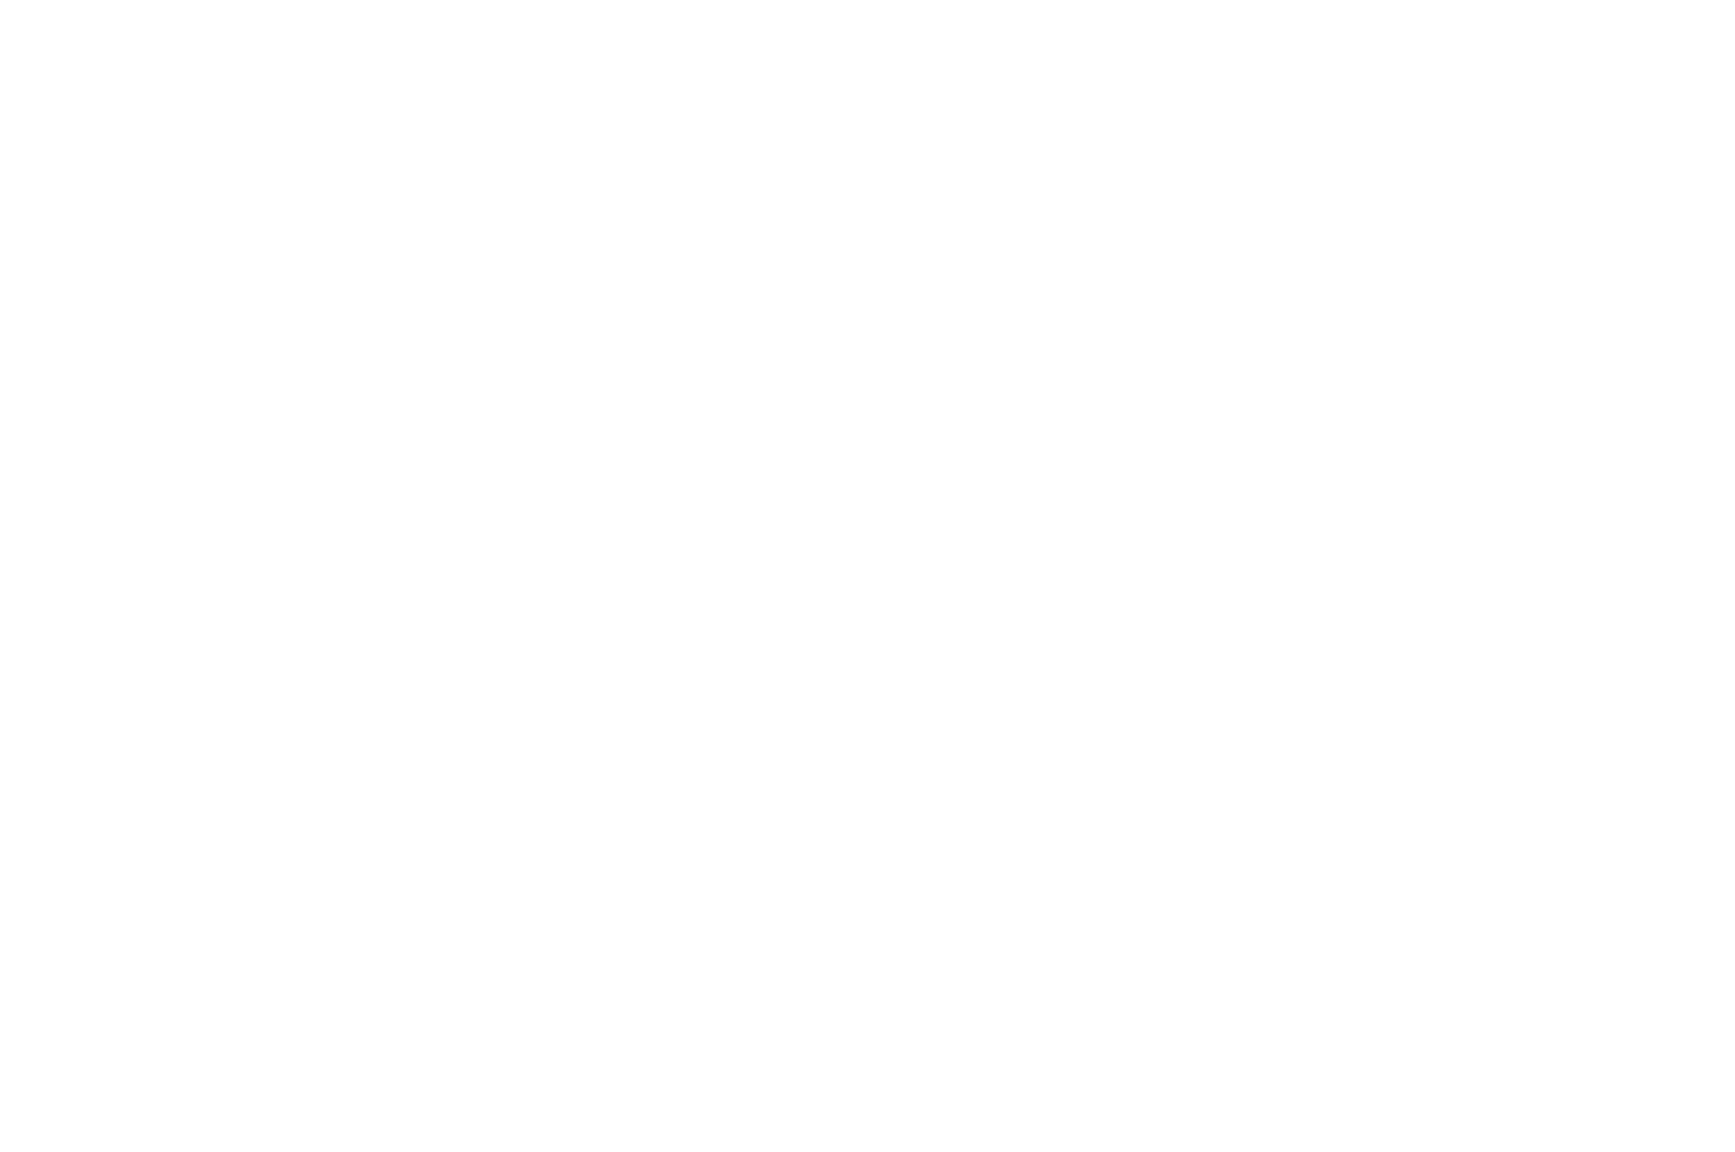 BFI Flare London LGBTQ Film Fest - March 28 & 30, 2019